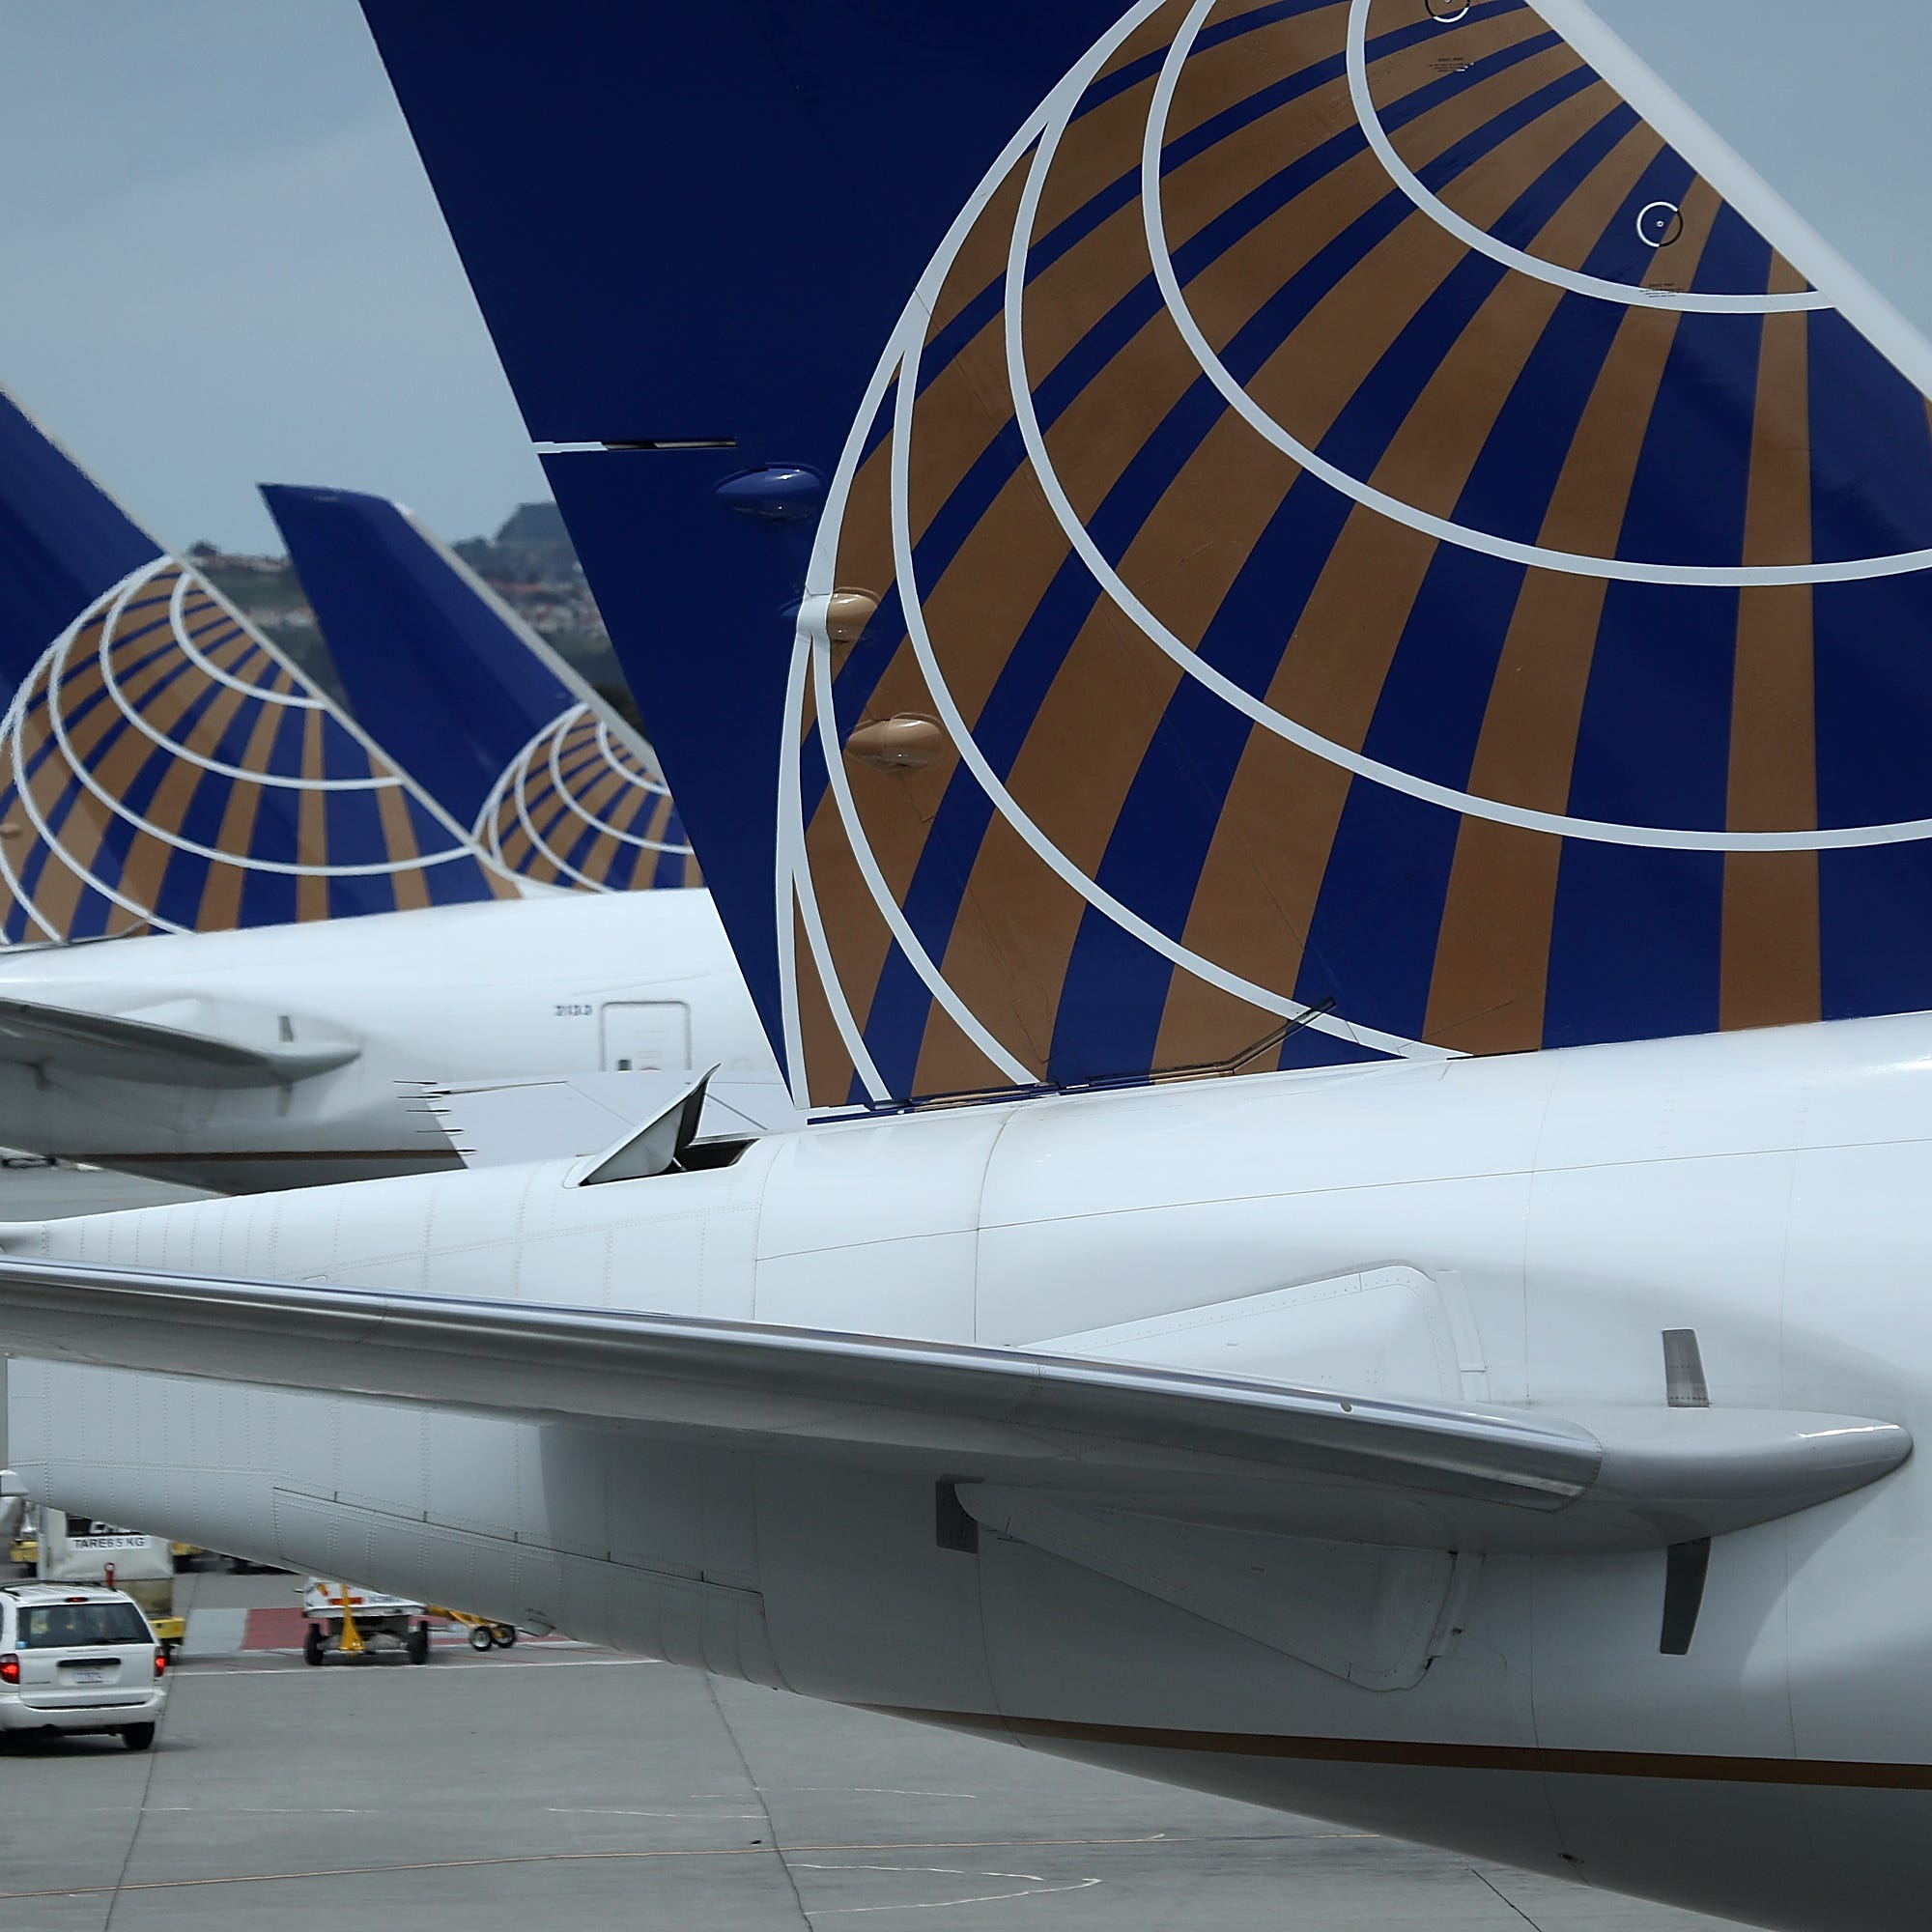 United Airlines planes sit on the tarmac at San Francisco International Airport on April 18, 2018 in San Francisco, California.